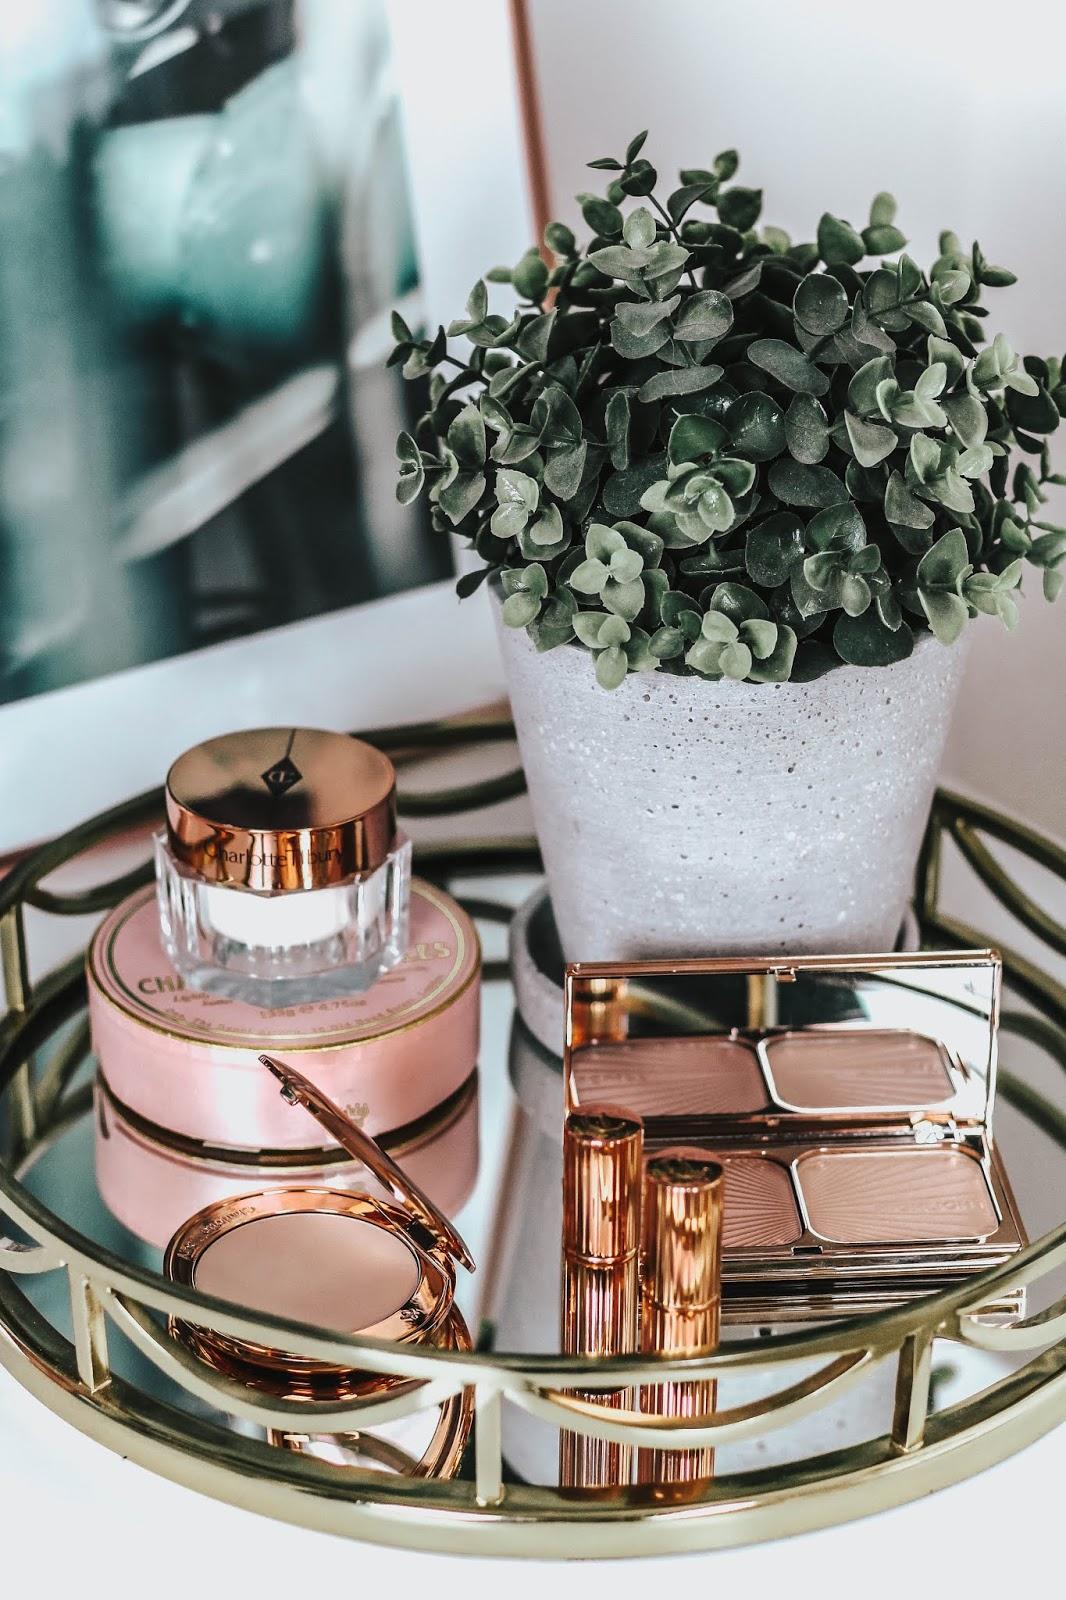 Pretty Haul of Charlotte Tilbury Luxury Makeup